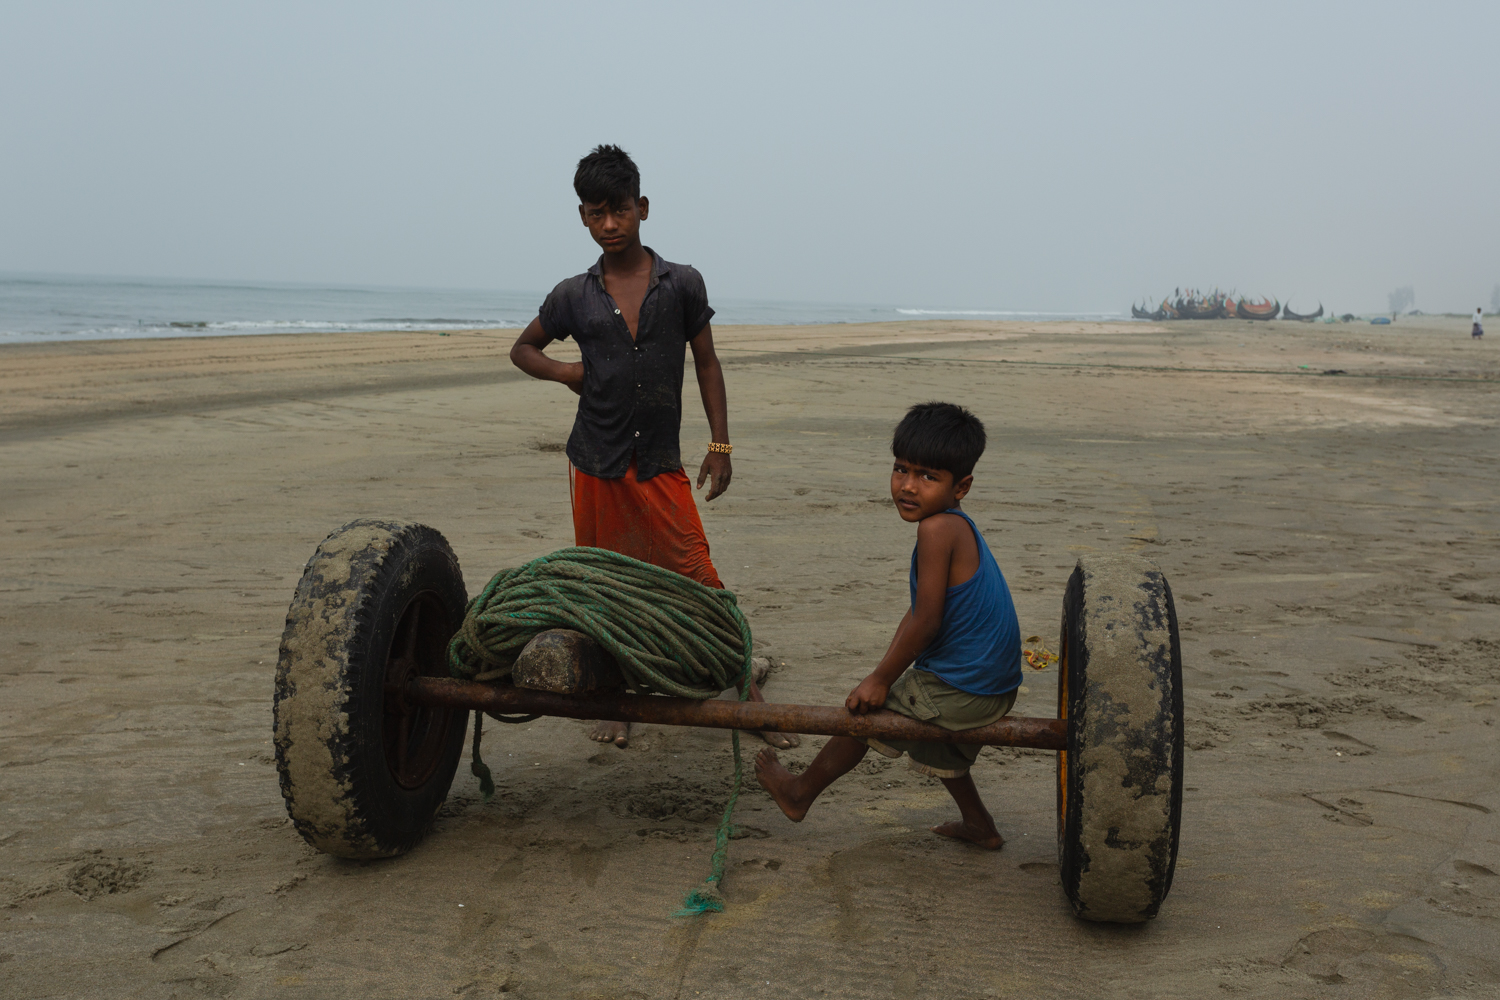 Boys at Bay of Bengal Cox's Bazar Bangladesh wait with boat transport equipment